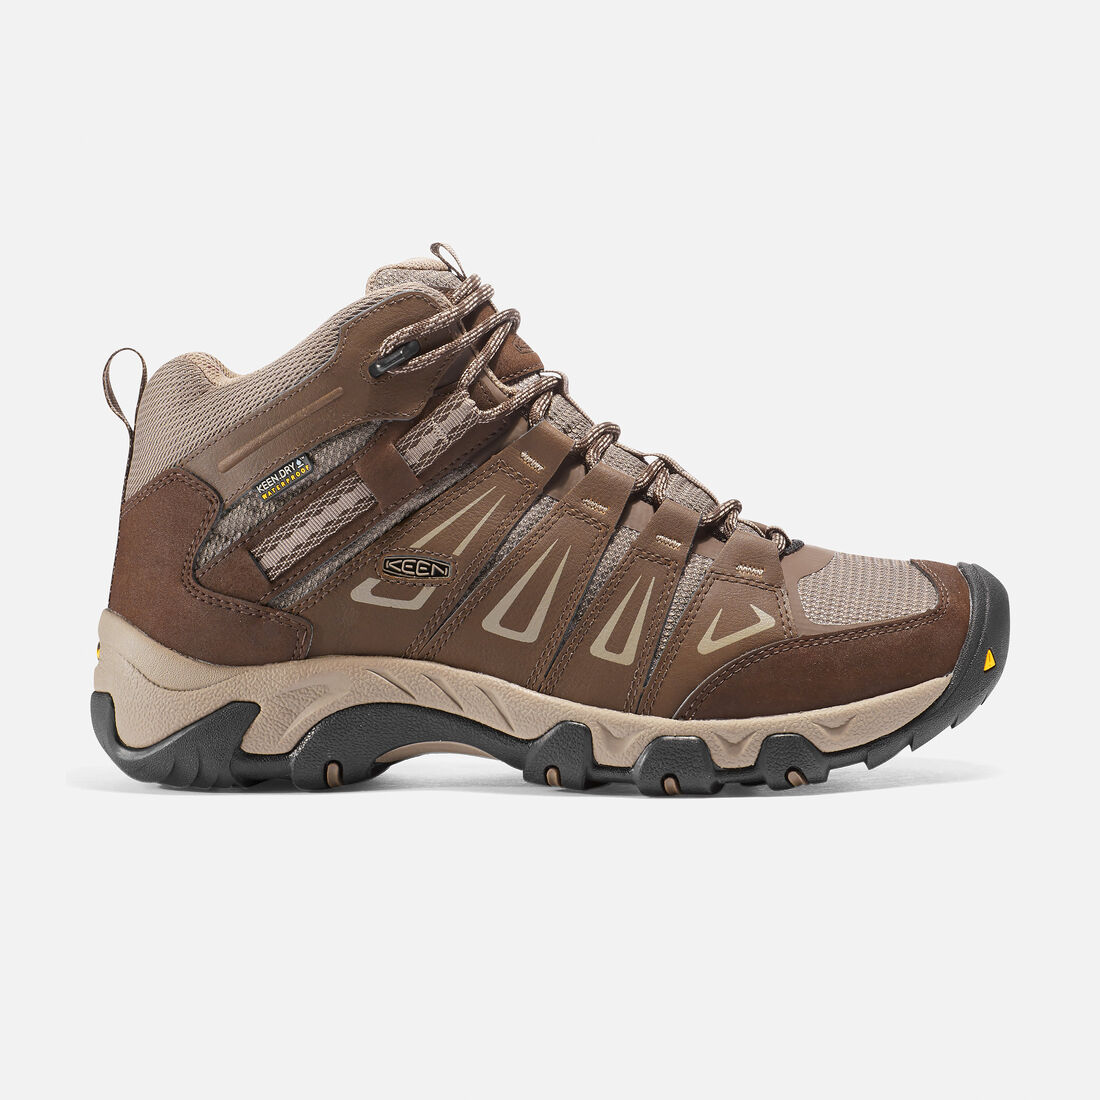 Men's Oakridge Waterproof Boot in Cascade/Brindle - large view.